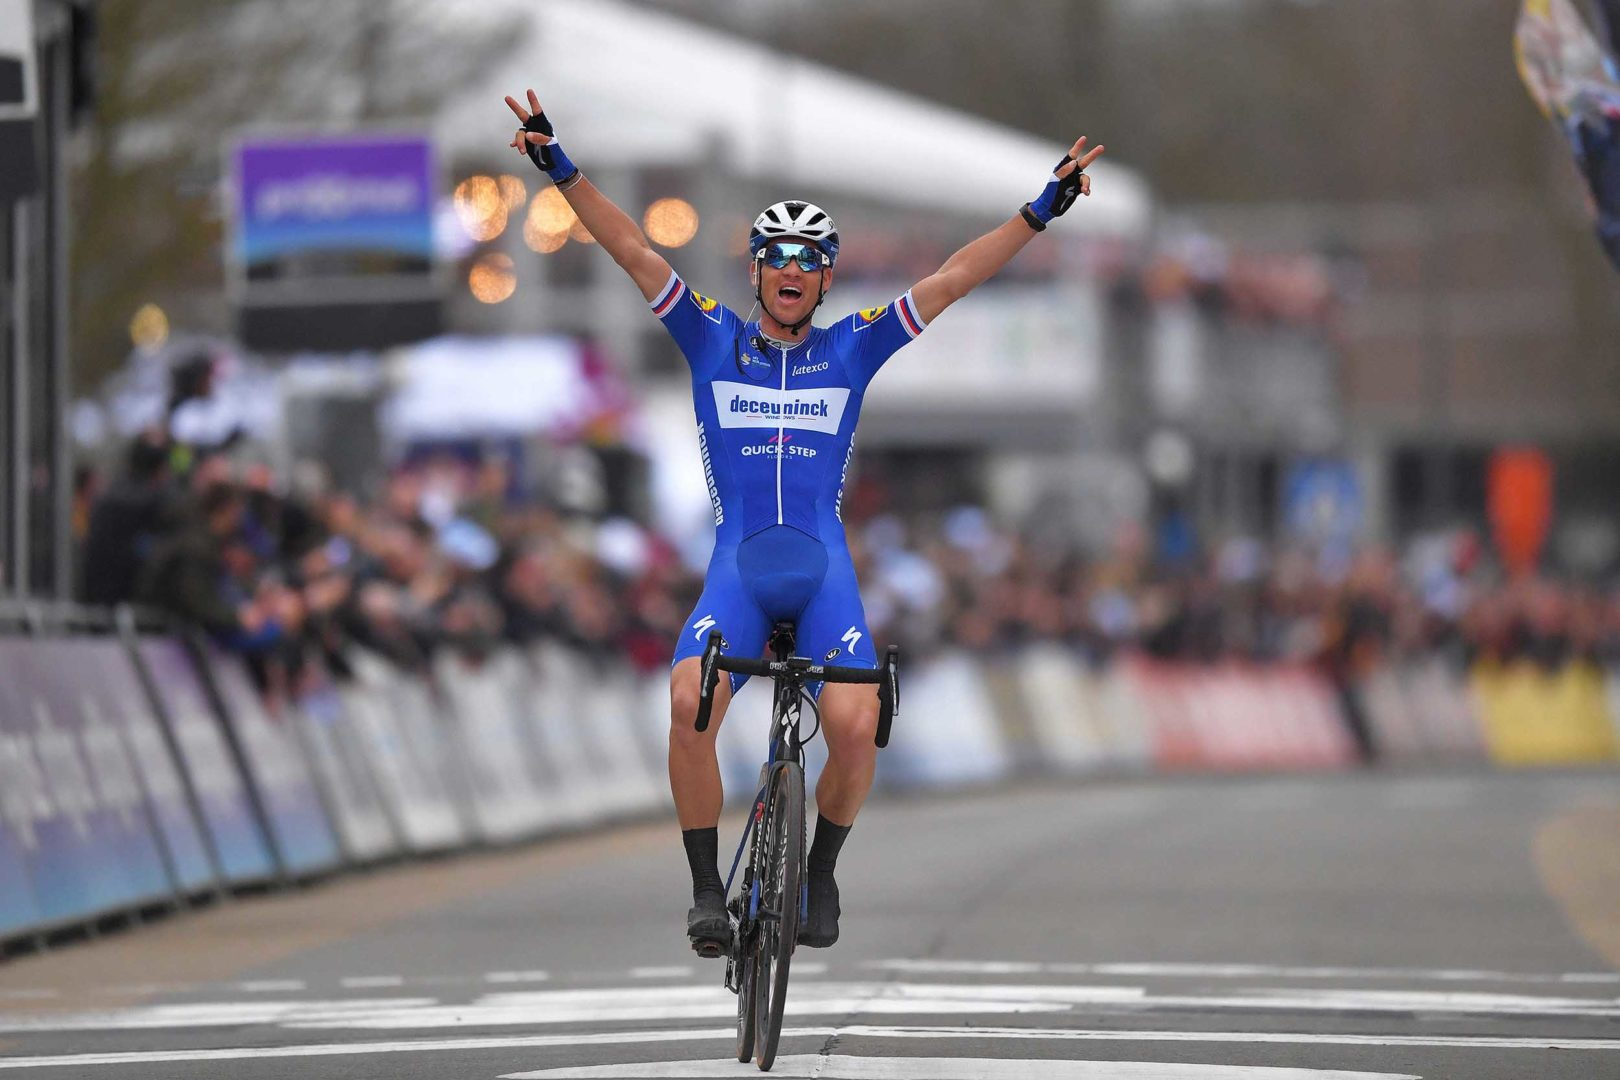 NINOVE, BELGIUM - MARCH 02: Arrival / Zdenek Stybar of Czech Republic  and Team Deceuninck Quick-Step / Celebration / during the 74th Omloop Het Nieuwsblad 2019 a 200km race from Gent to Ninove / FLanders Classics / @OmloopHNB / on March 02, 2019 in Ninove, Belgium. (Photo by Tim de Waele/Getty Images)